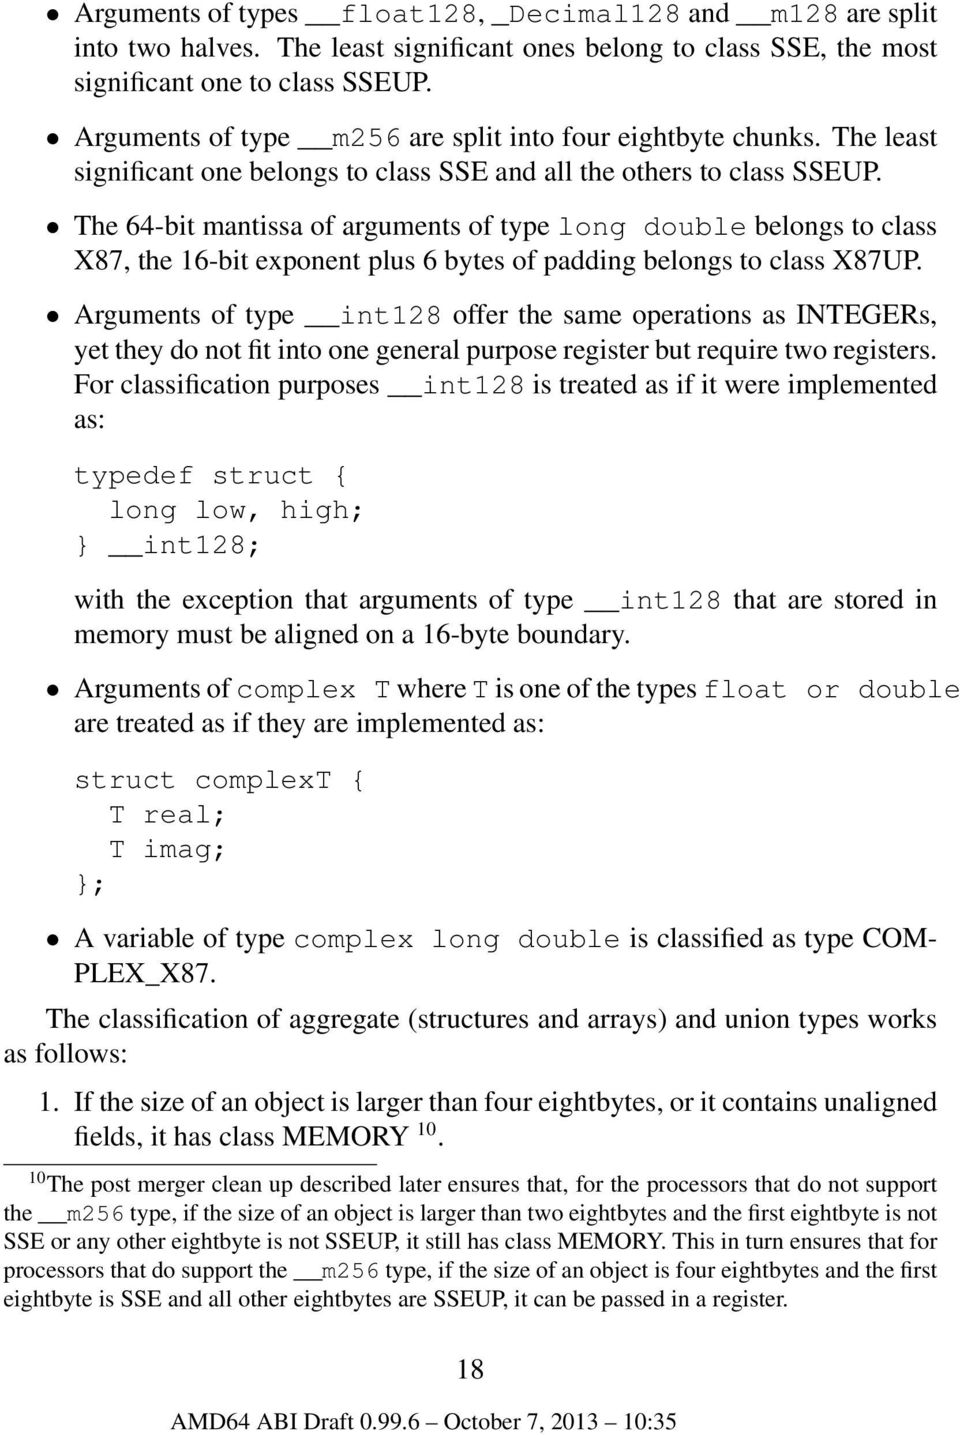 The 64-bit mantissa of arguments of type long double belongs to class X87, the 16-bit exponent plus 6 bytes of padding belongs to class X87UP.